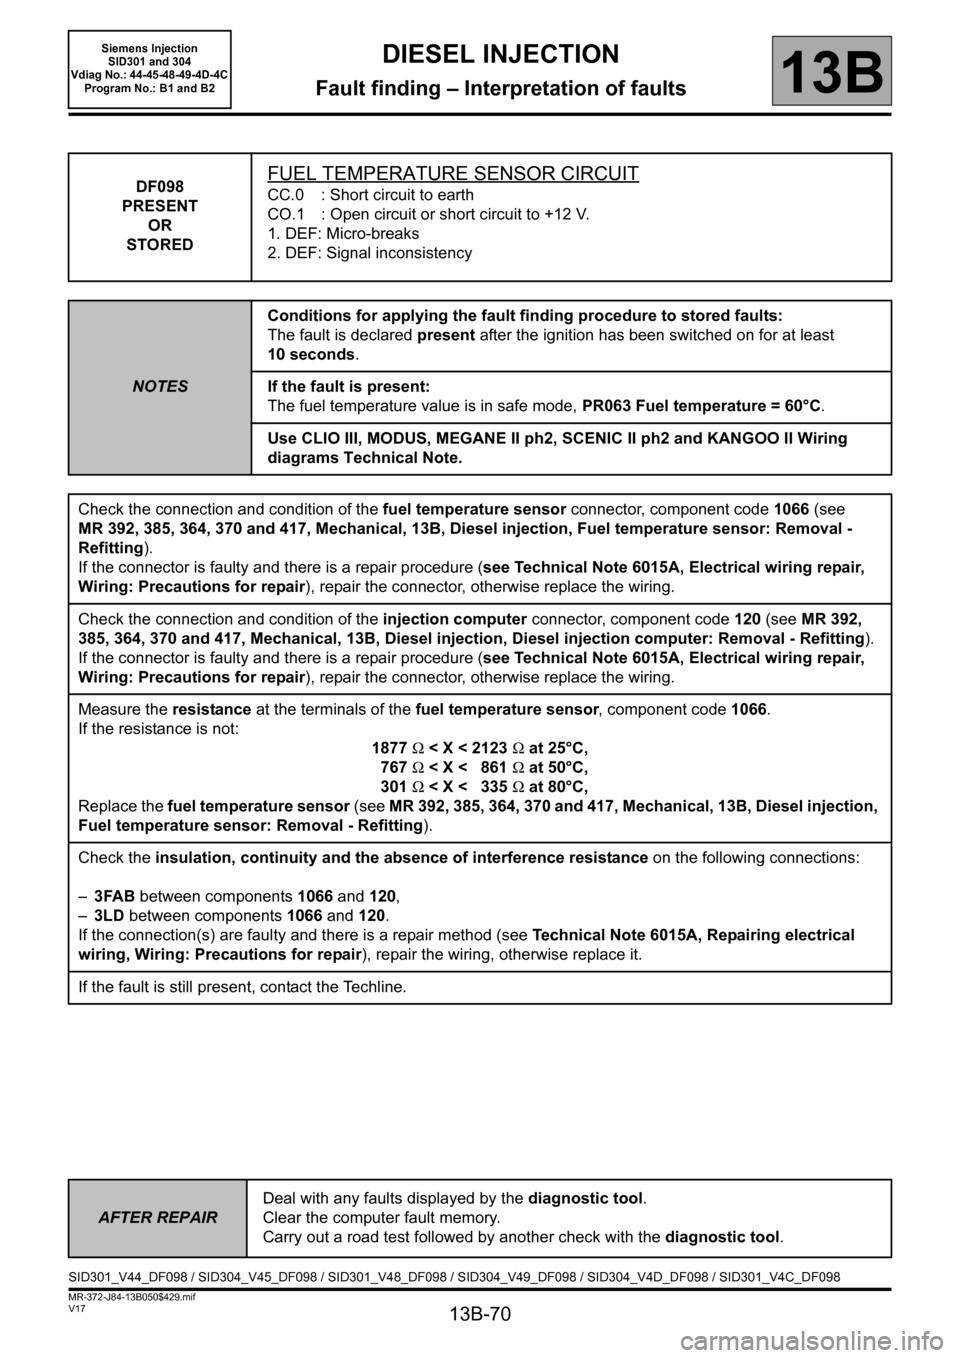 RENAULT SCENIC 2011 J95 / 3.G Engine And Peripherals Siemens Injection Workshop Manual, Page 70